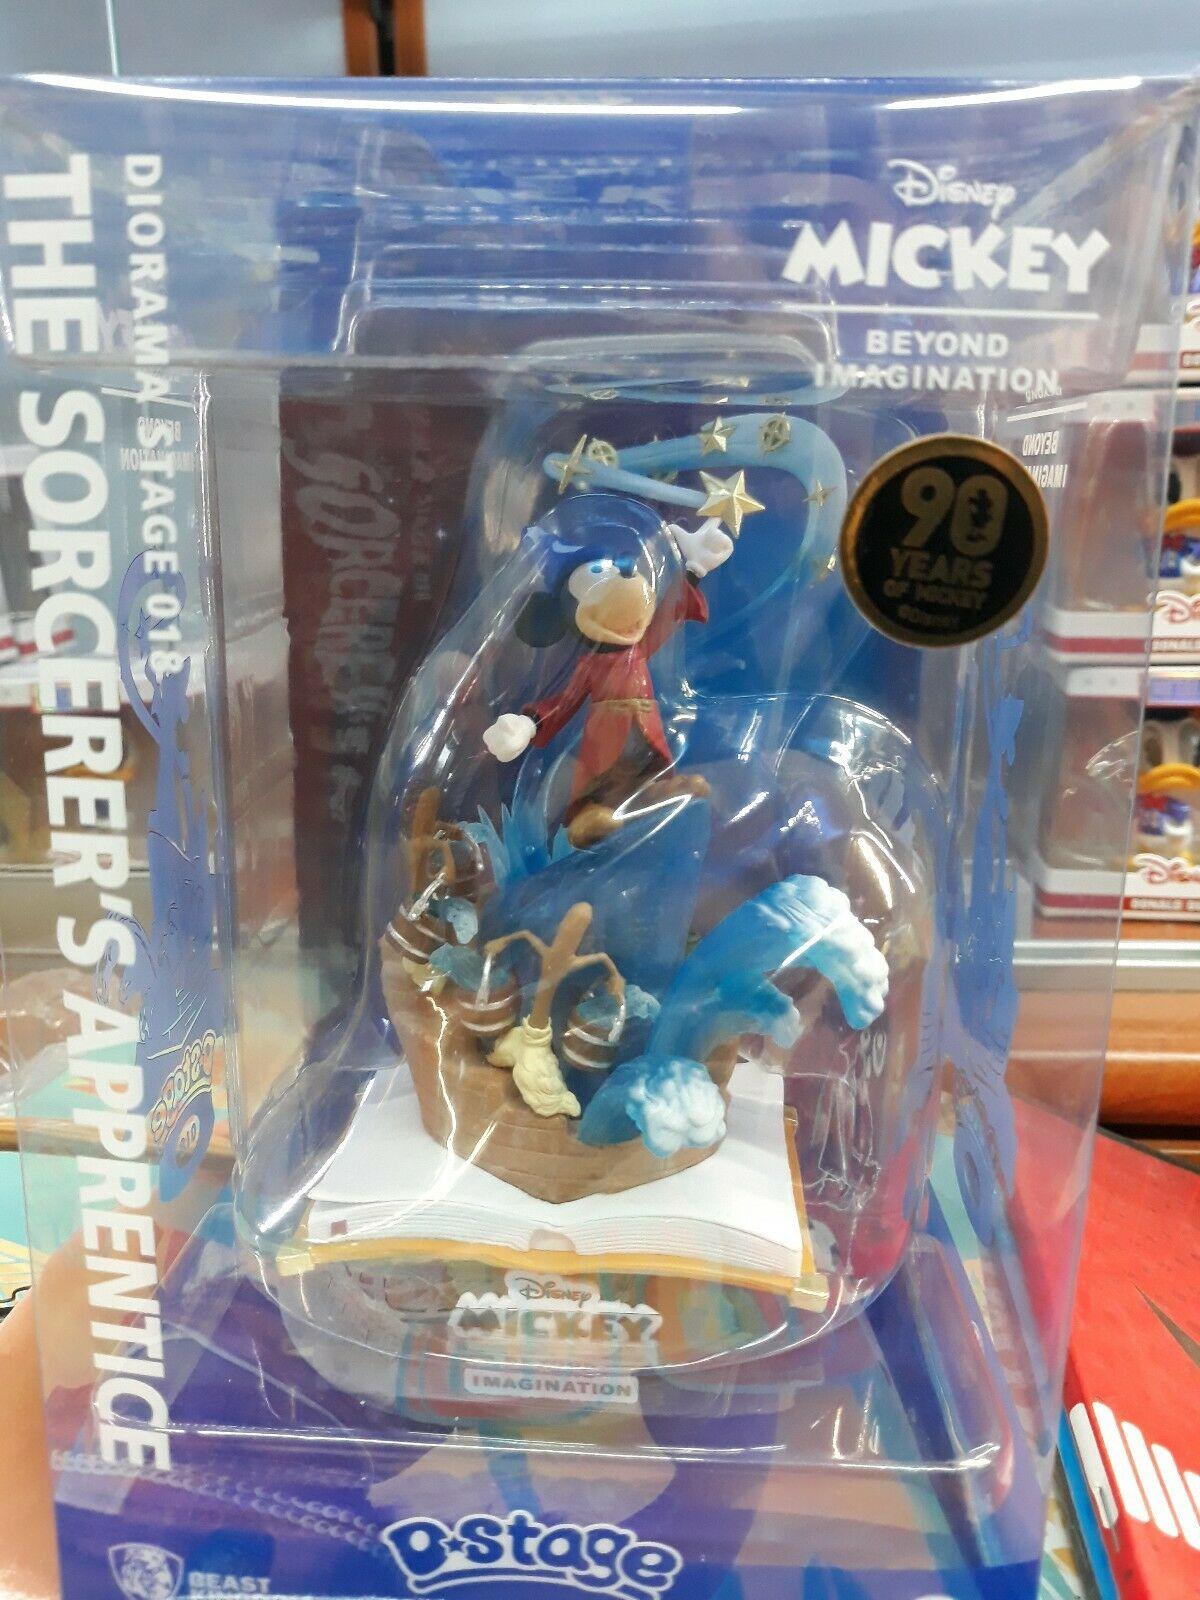 FANTASIA  THE SORCERER'S APPRENTICE D-STAGE BEST KINGDOM 018 MICKEY MOUSE